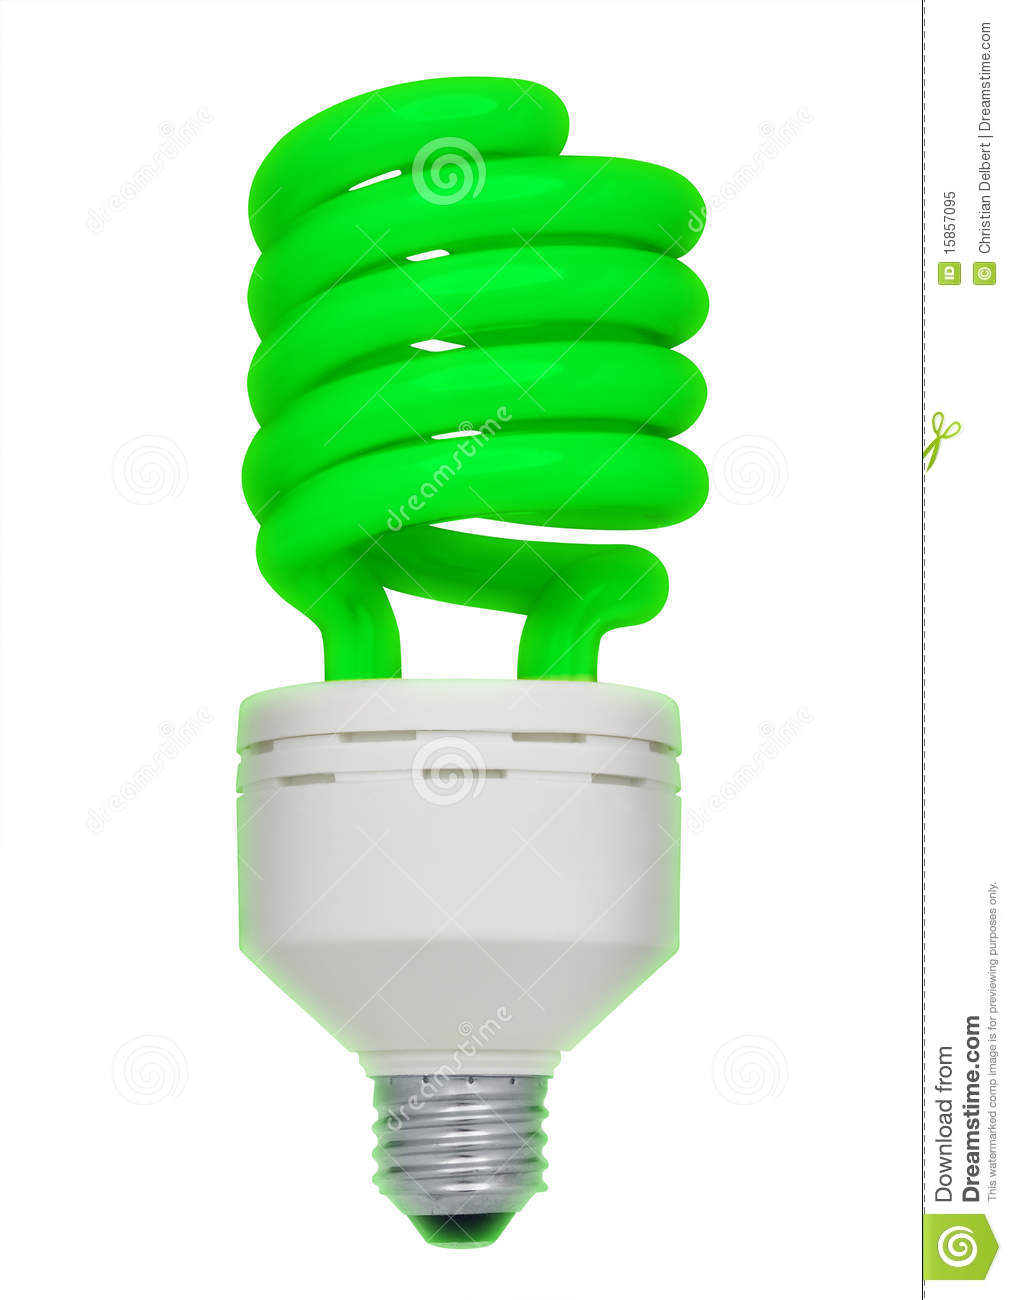 Green Fluorescent Light Bulb Isolated Royalty Free Stock Photo Image 15857095